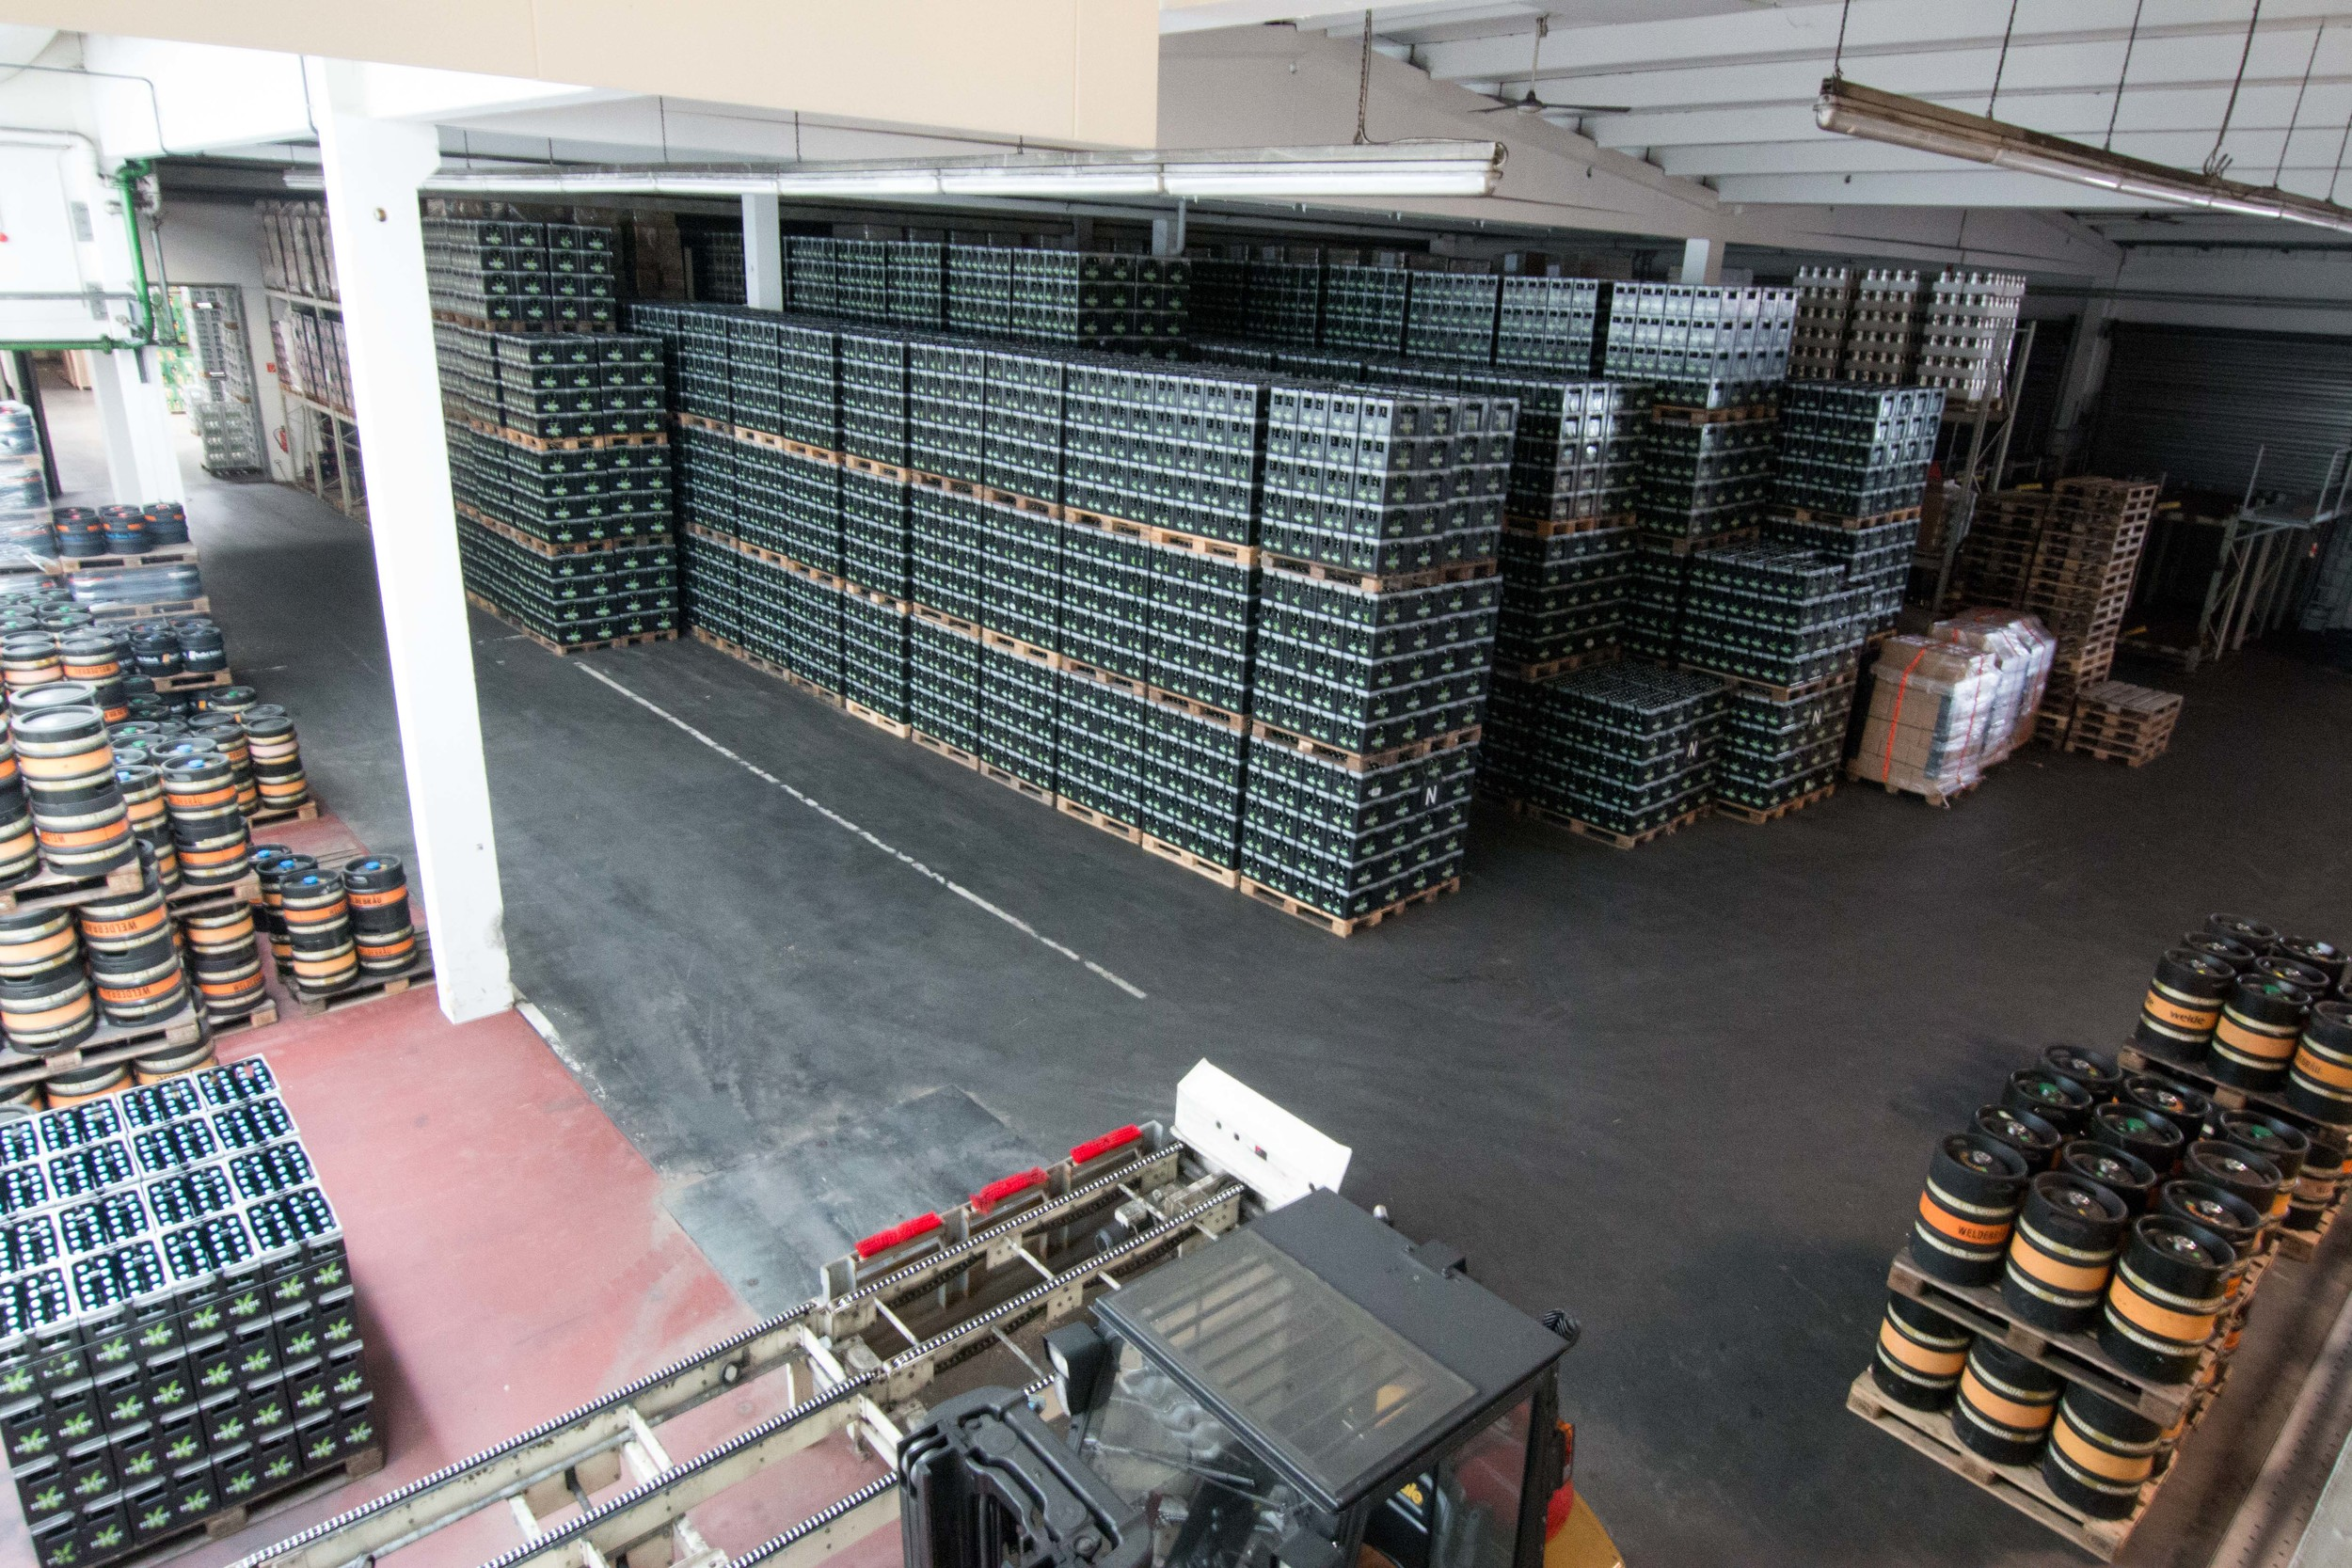 Cases and kegs of Welde beer waiting to be shipped. Just to give you an idea, there are about 1600 bottles of beer per pallet.